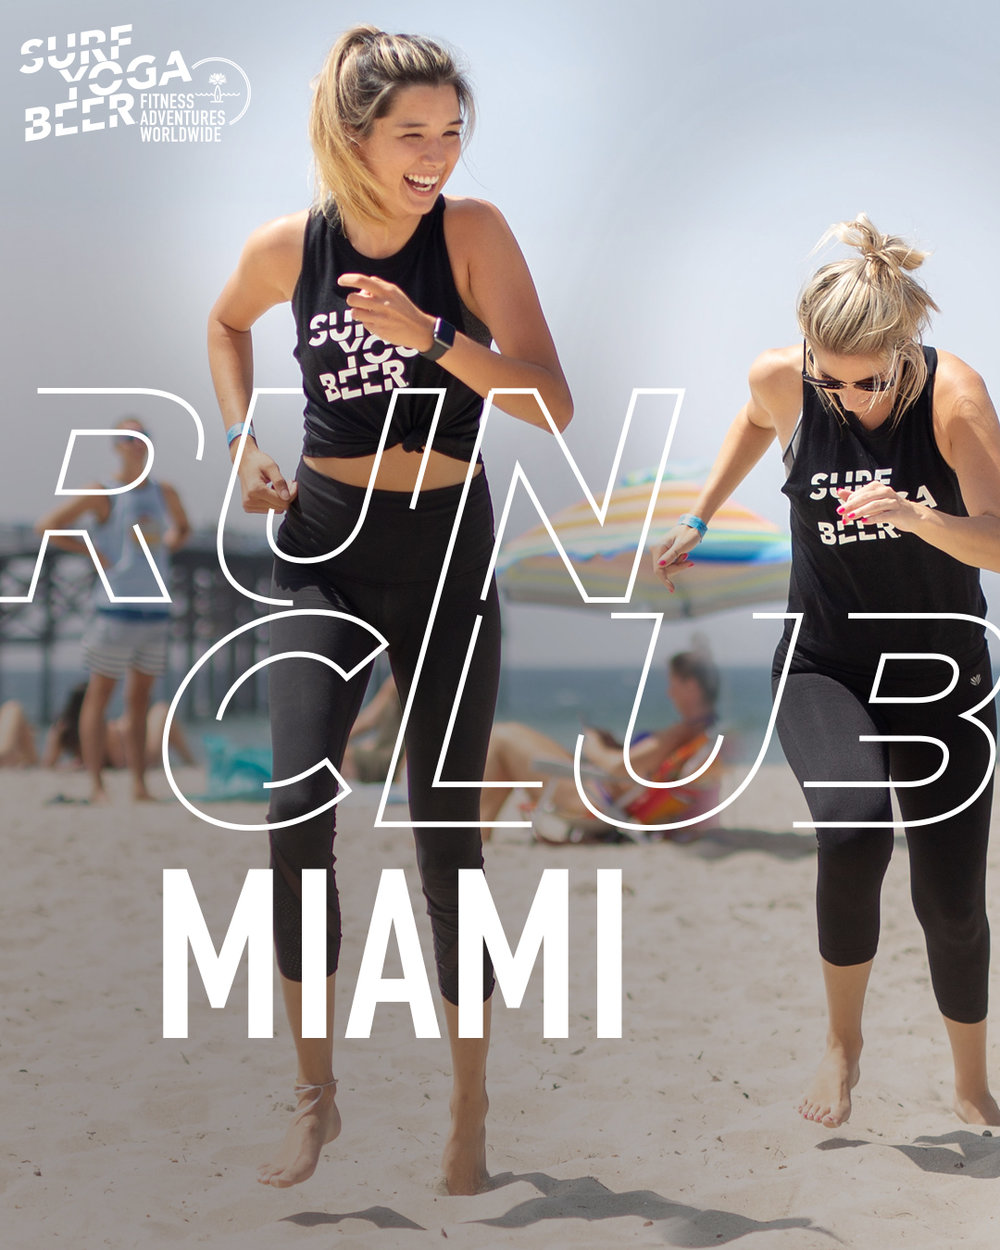 RUN_CLUB_Promo__Miami_1080x1350_v3.jpg